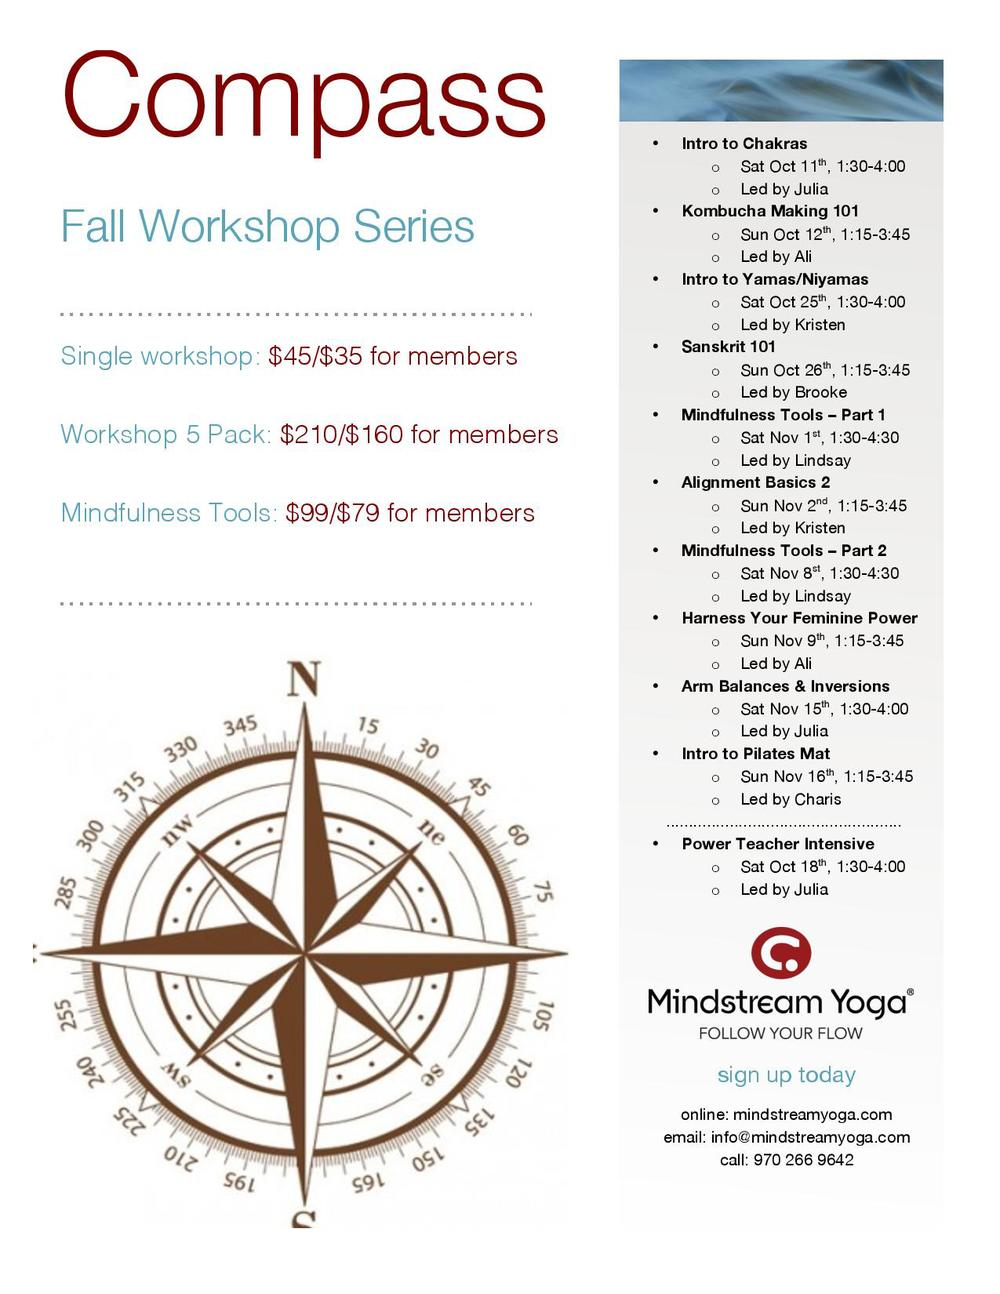 compass workshop schedule overview